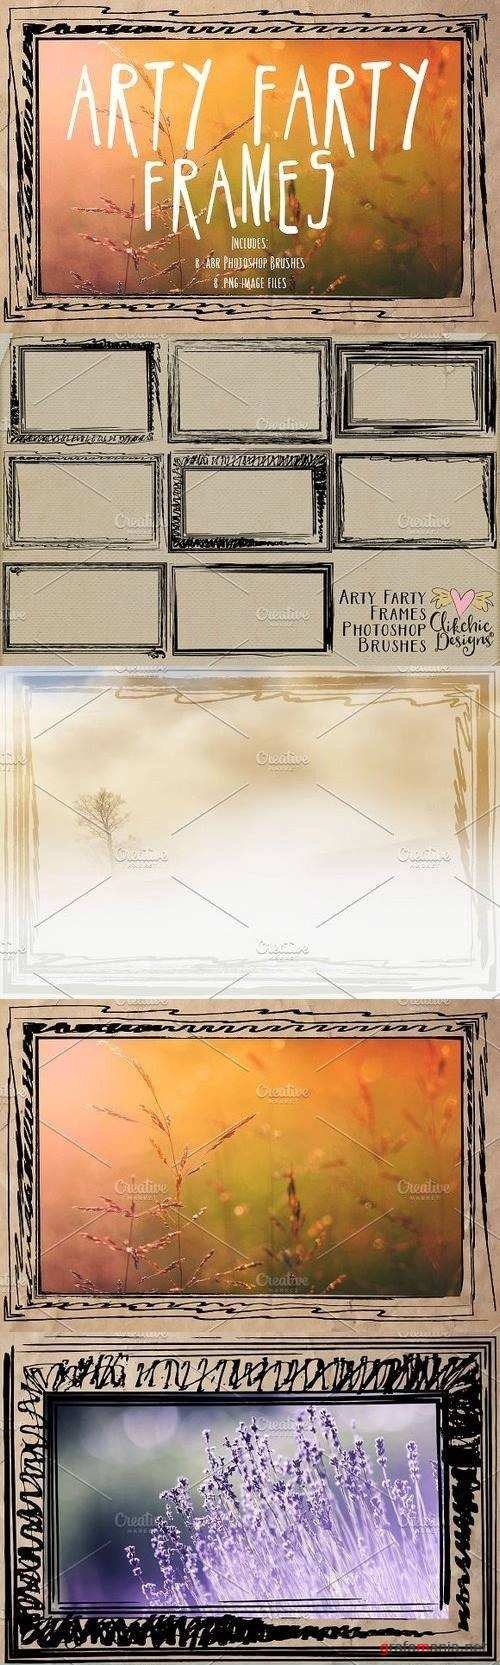 Arty Farty Frames & PS Brushes 1209292